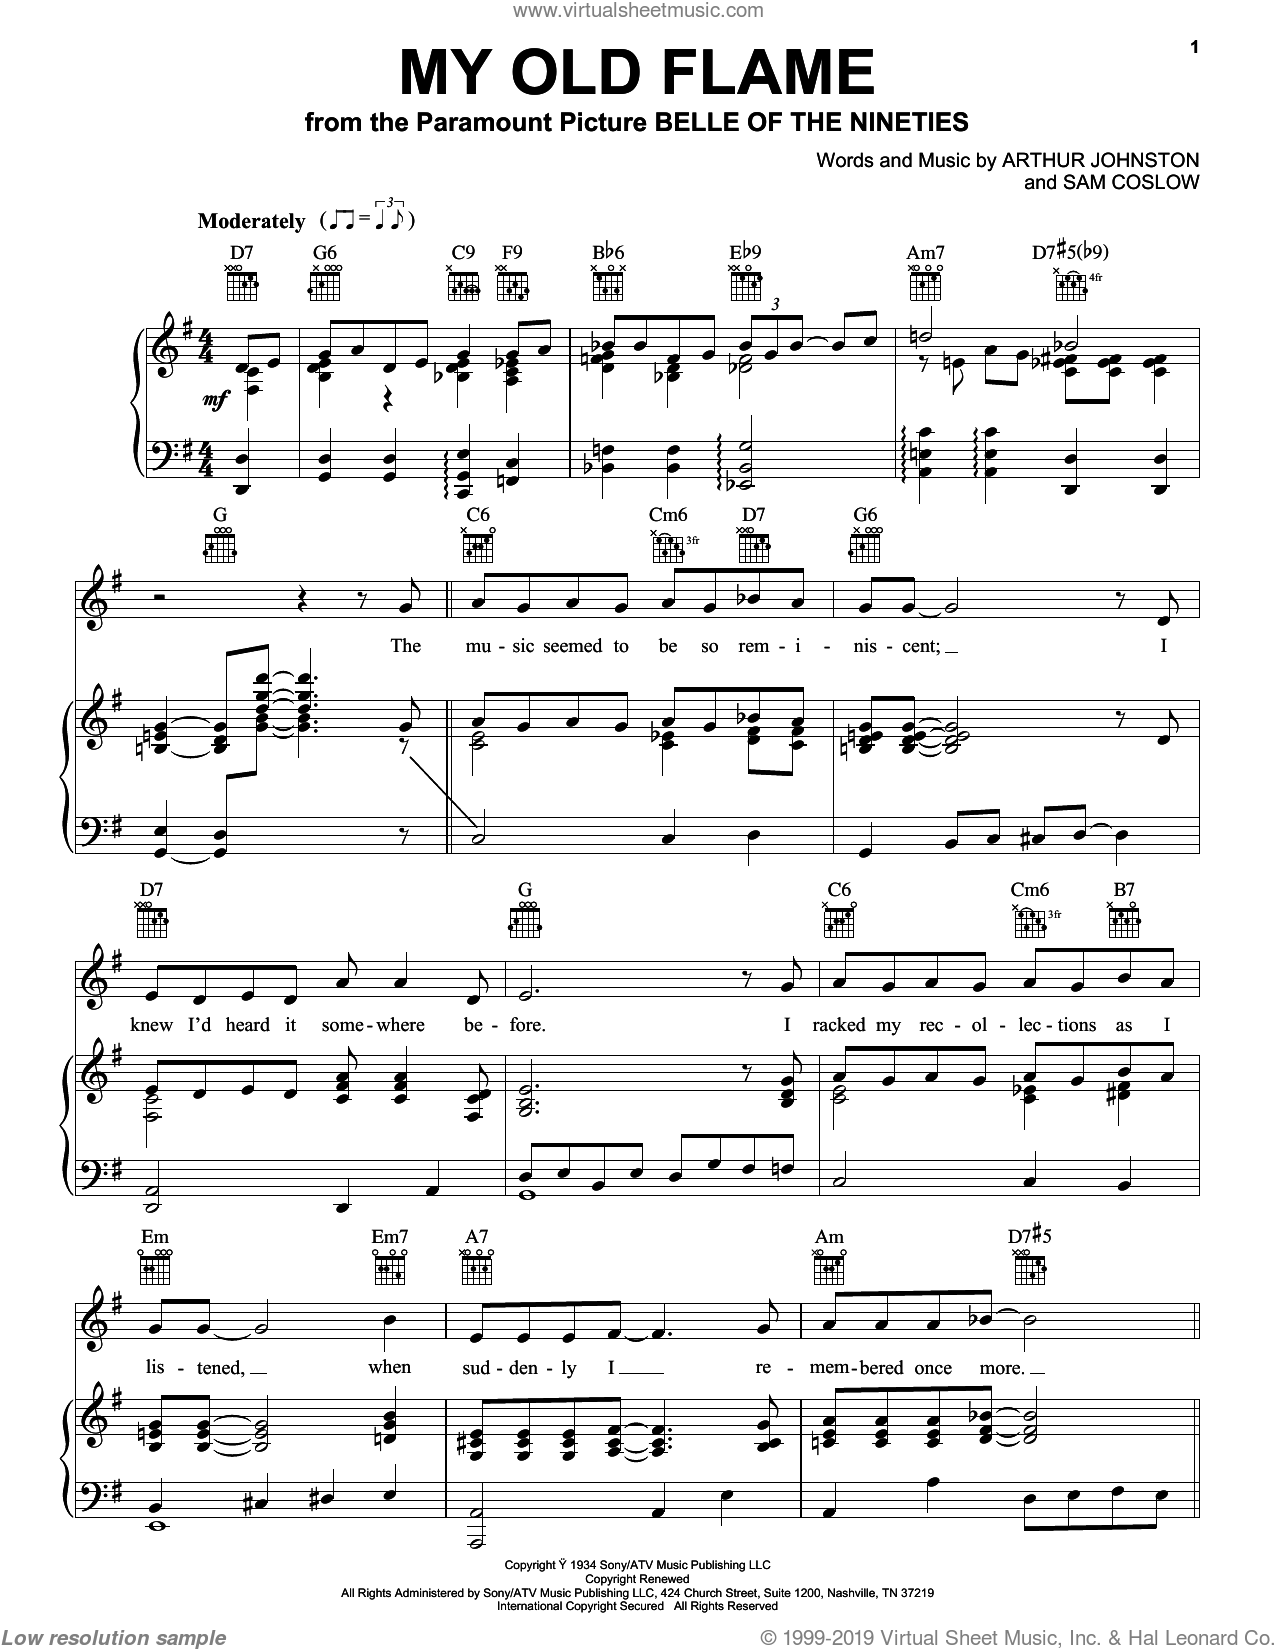 My Old Flame sheet music for voice, piano or guitar by Peggy Lee, Arthur Johnston and Sam Coslow, intermediate skill level